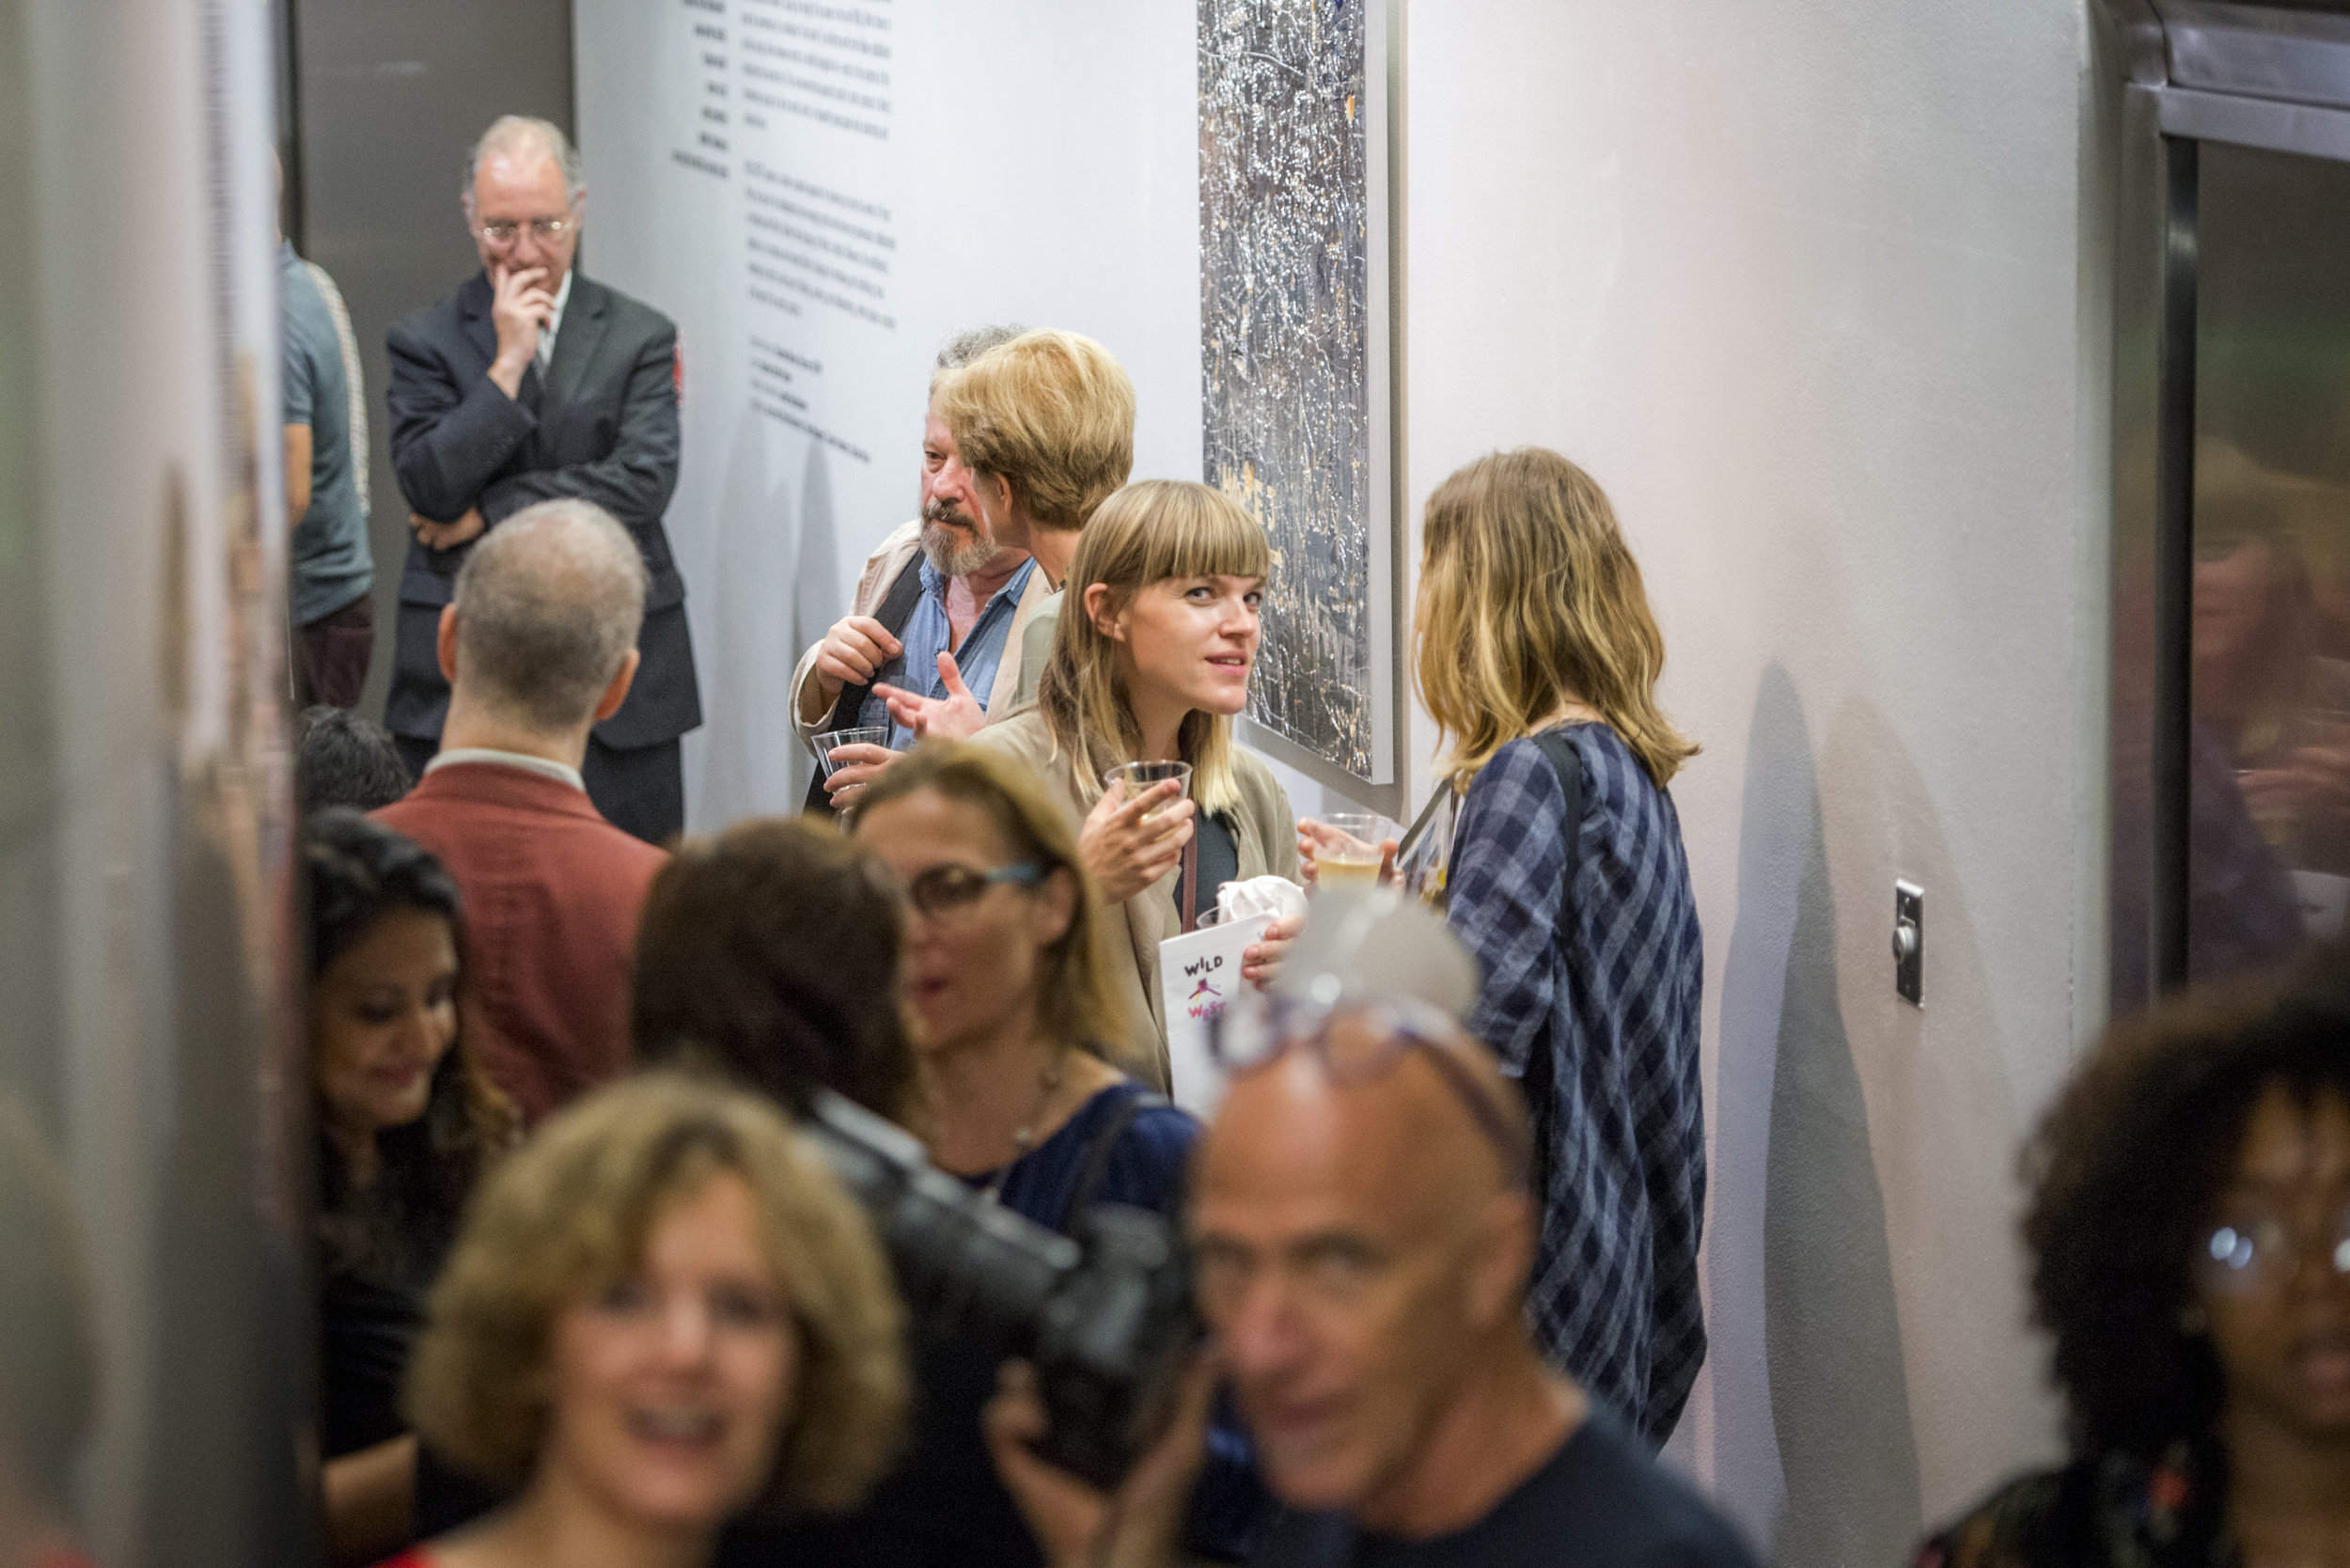 WILD WEST  Opening Reception, September 19, 2017, at the Austrian Cultural Forum New York, Photo: David Plakke/ACFNY